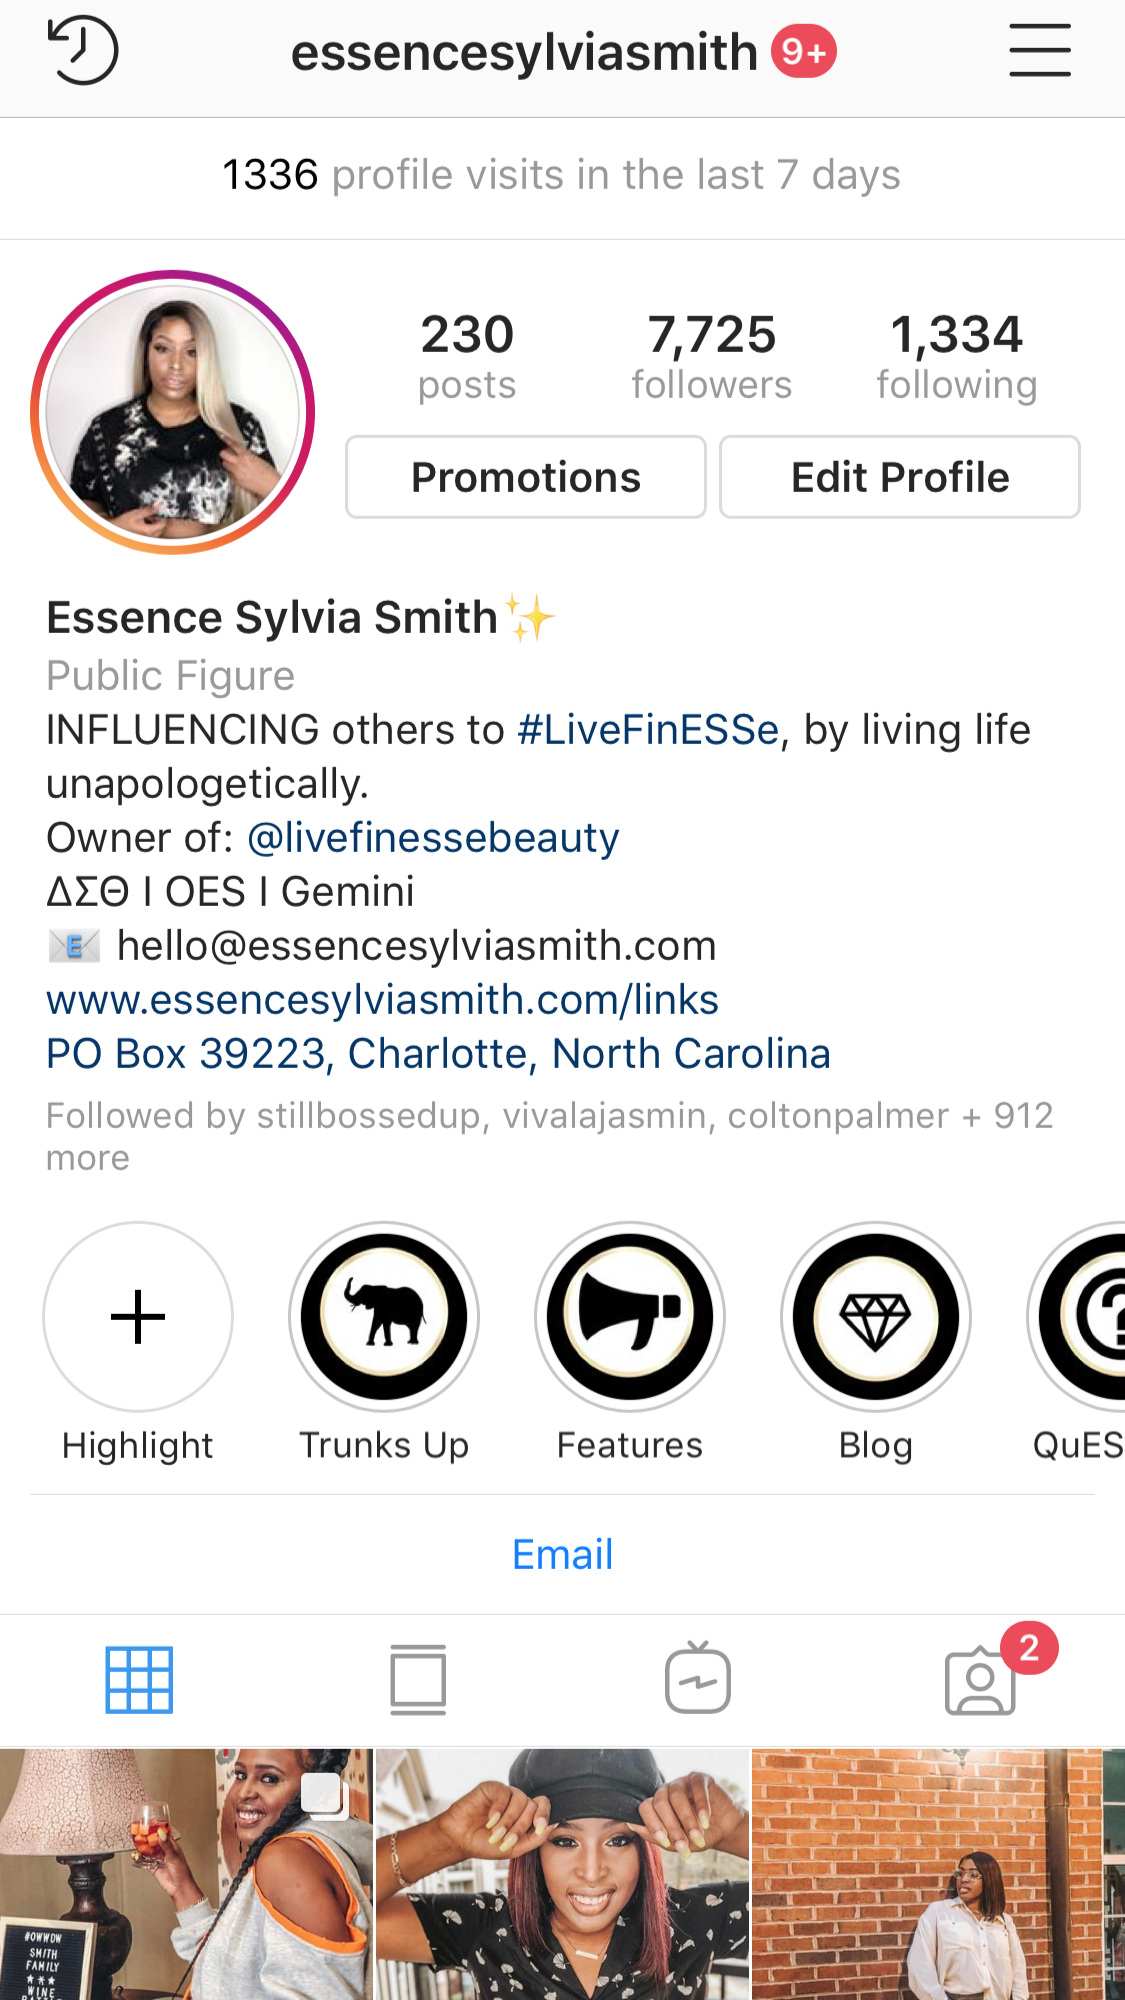 Follow me on Instagram  @essencesylviasmith !